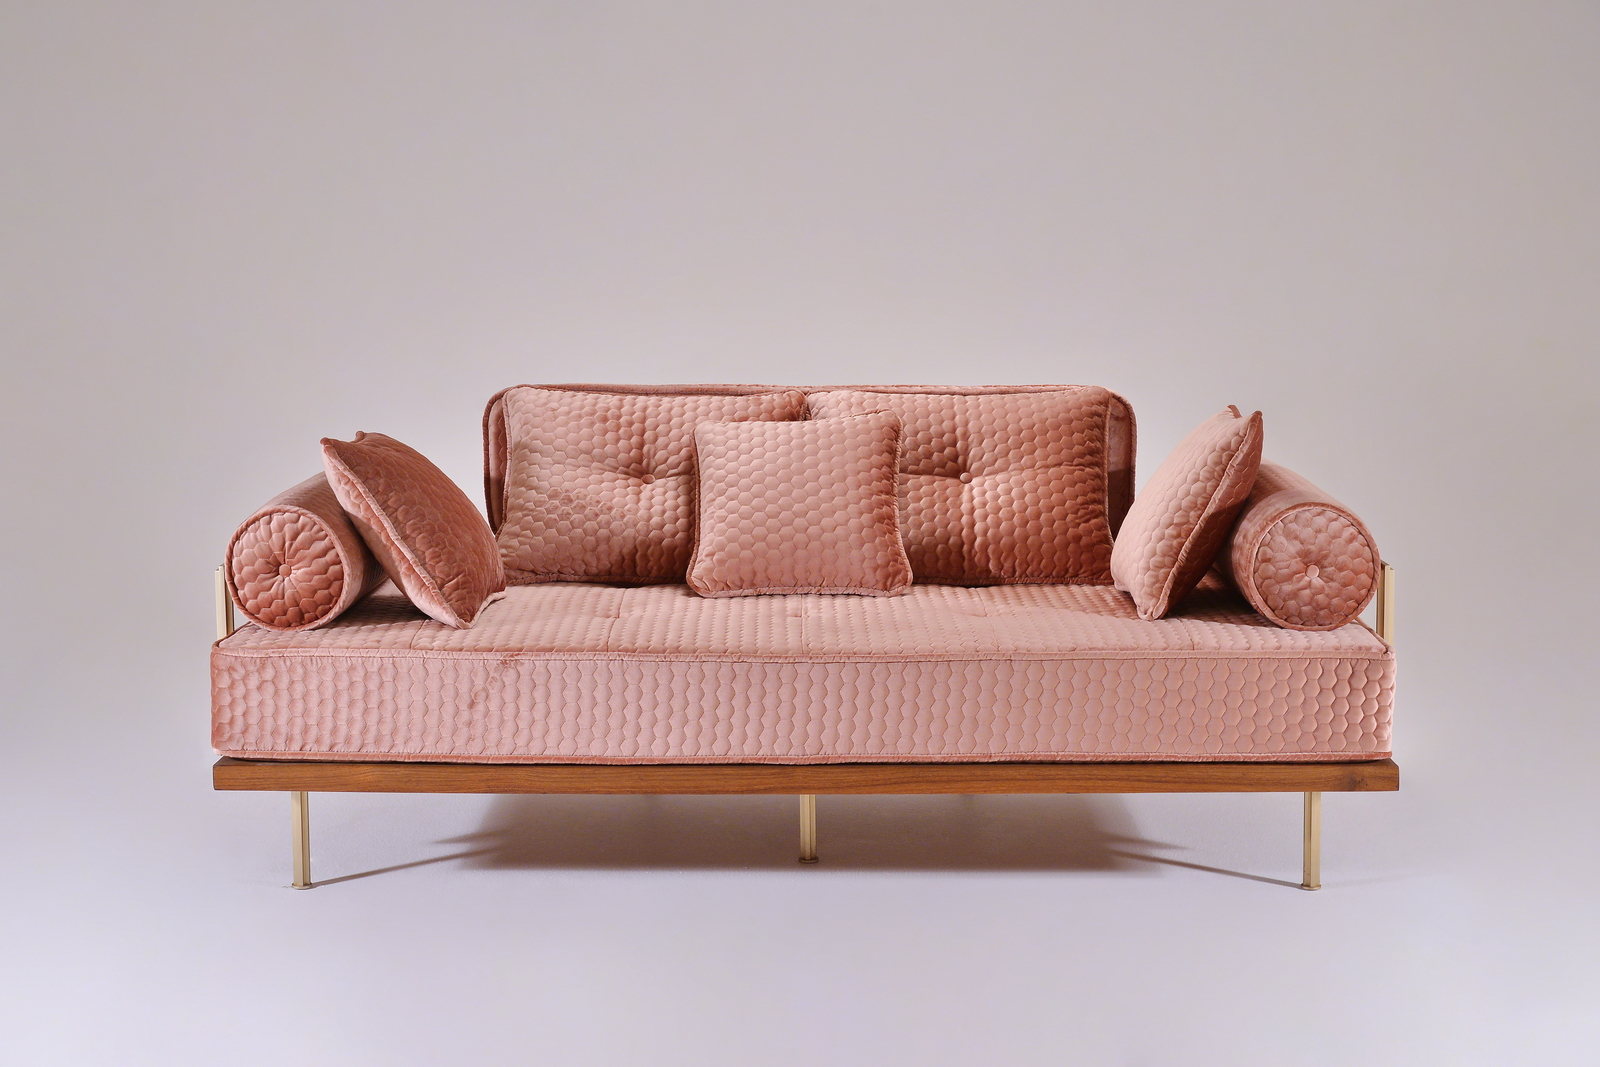 PTendercool-Sofa-PT71-BS1-TE-DO-GYD Quercus (Rosa)-01